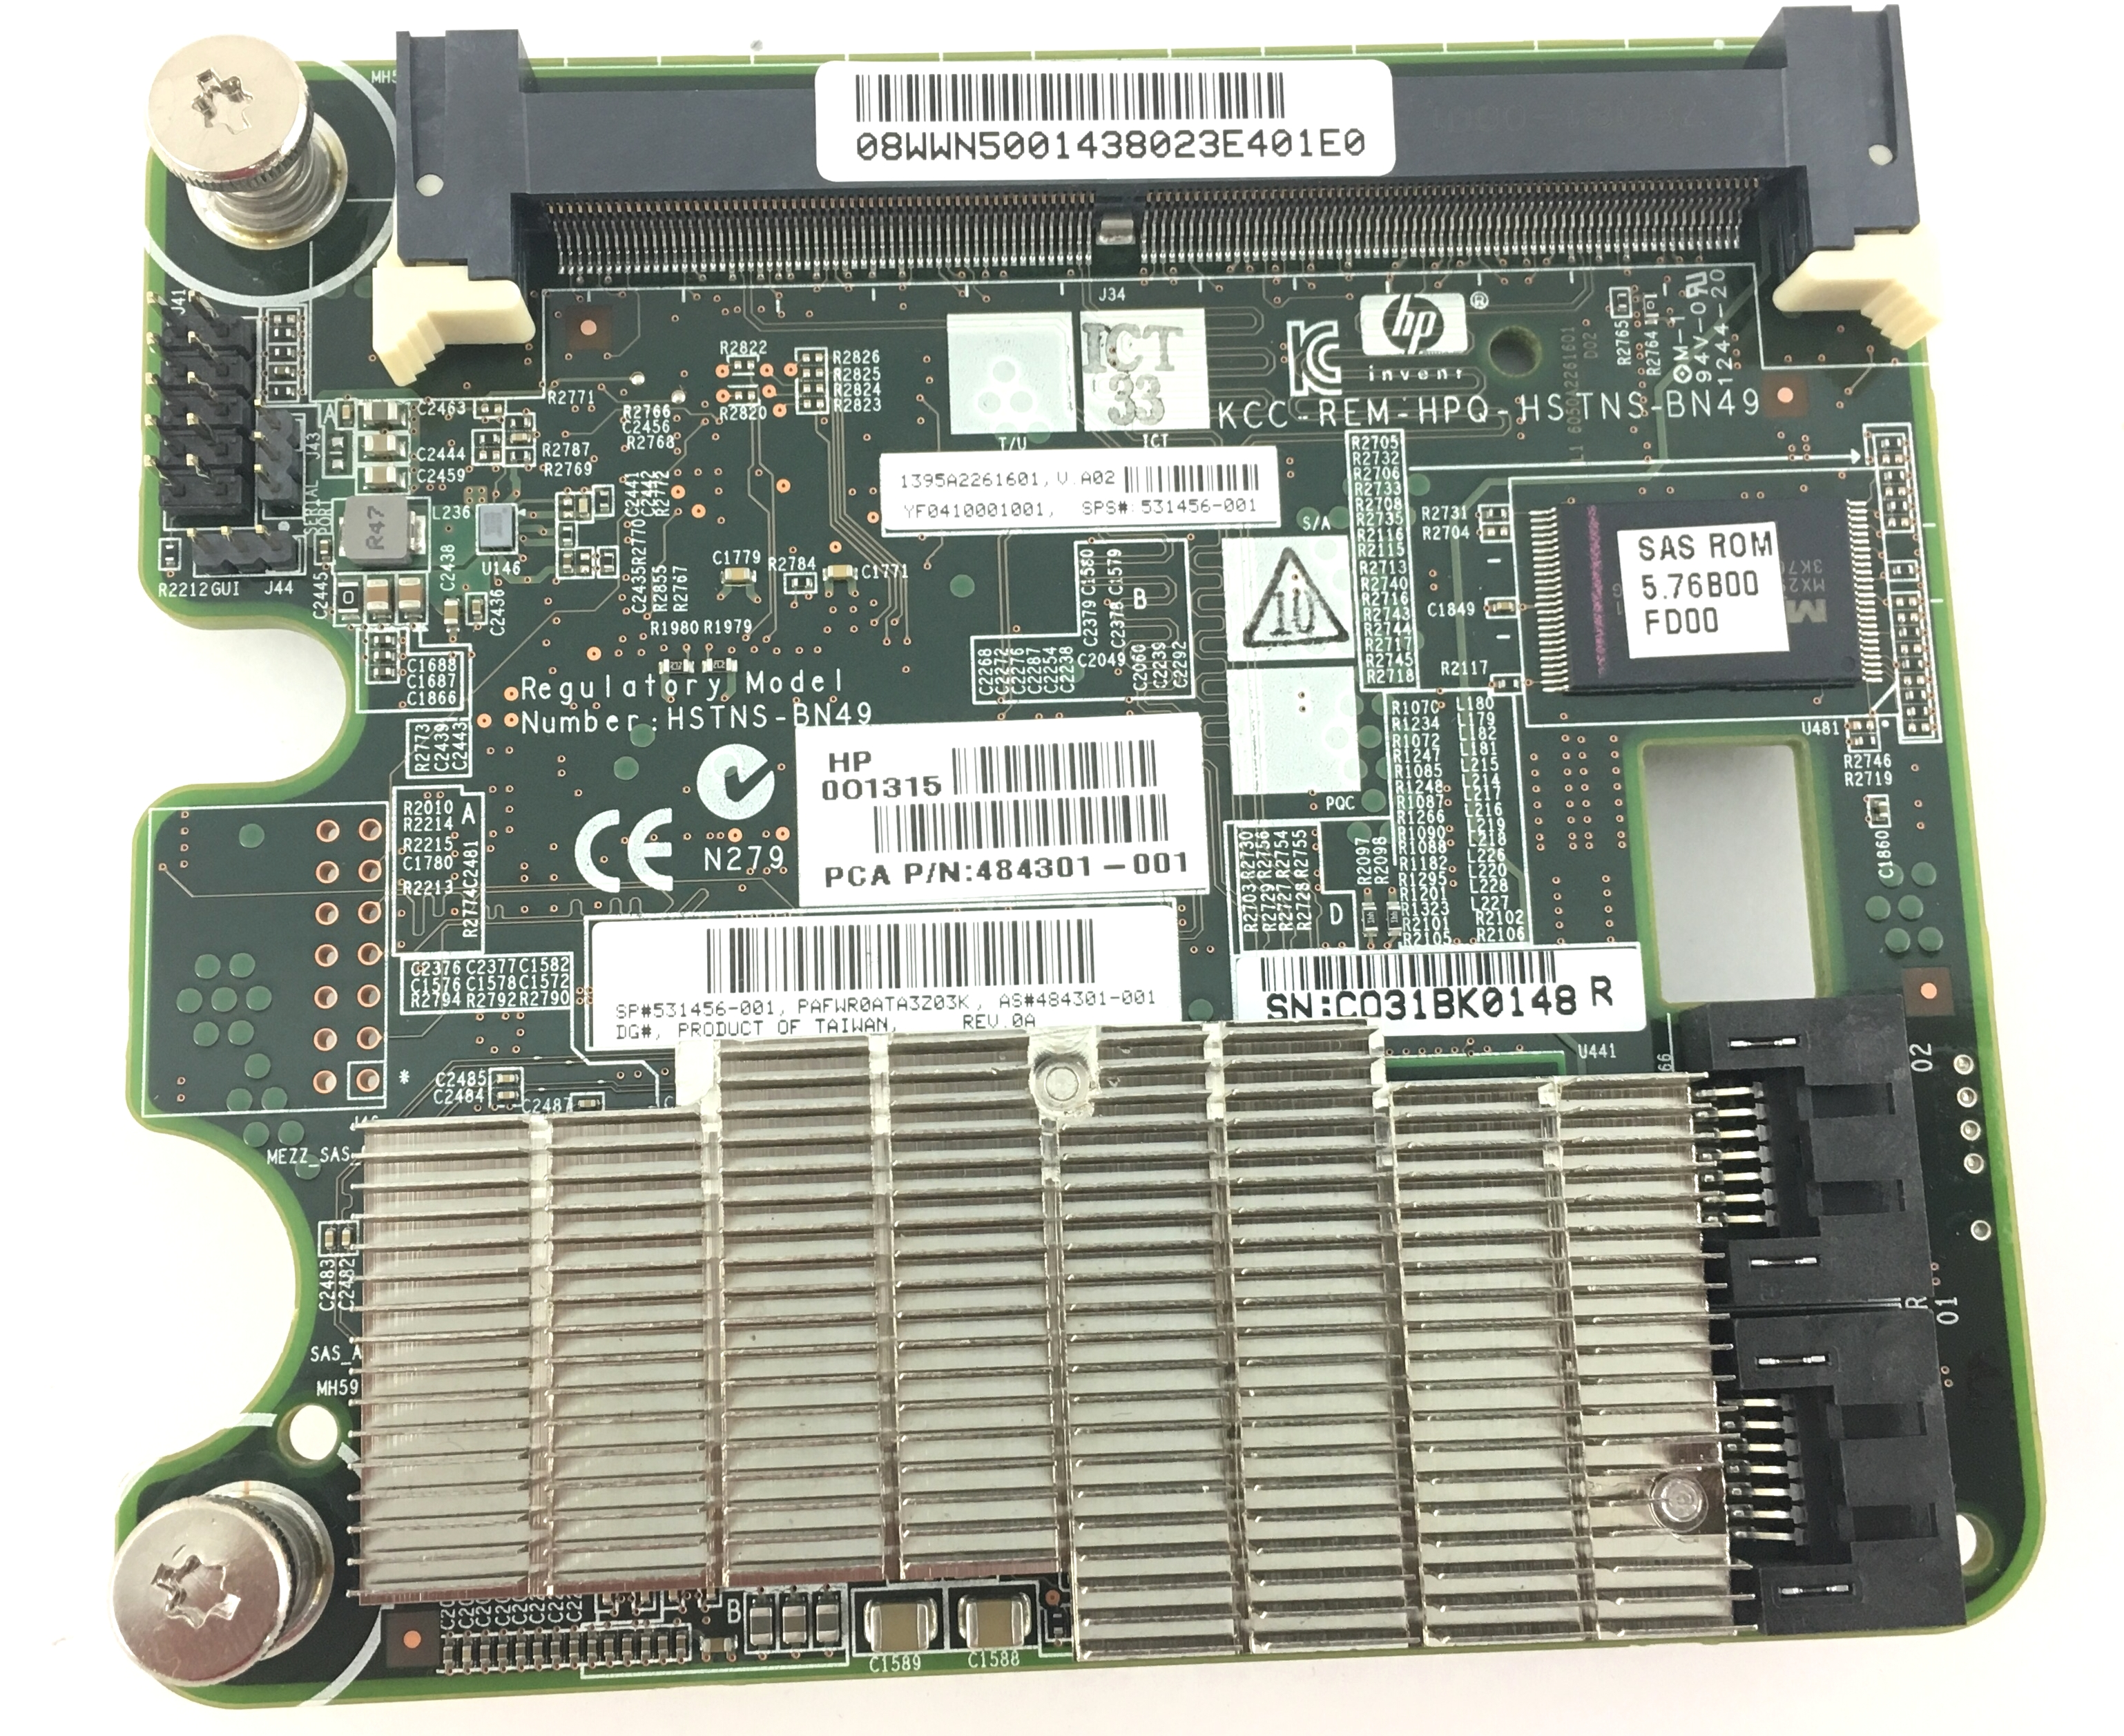 HP Smart Array P712M/Zm 6G Mezzanine Controller Card (531456-001)